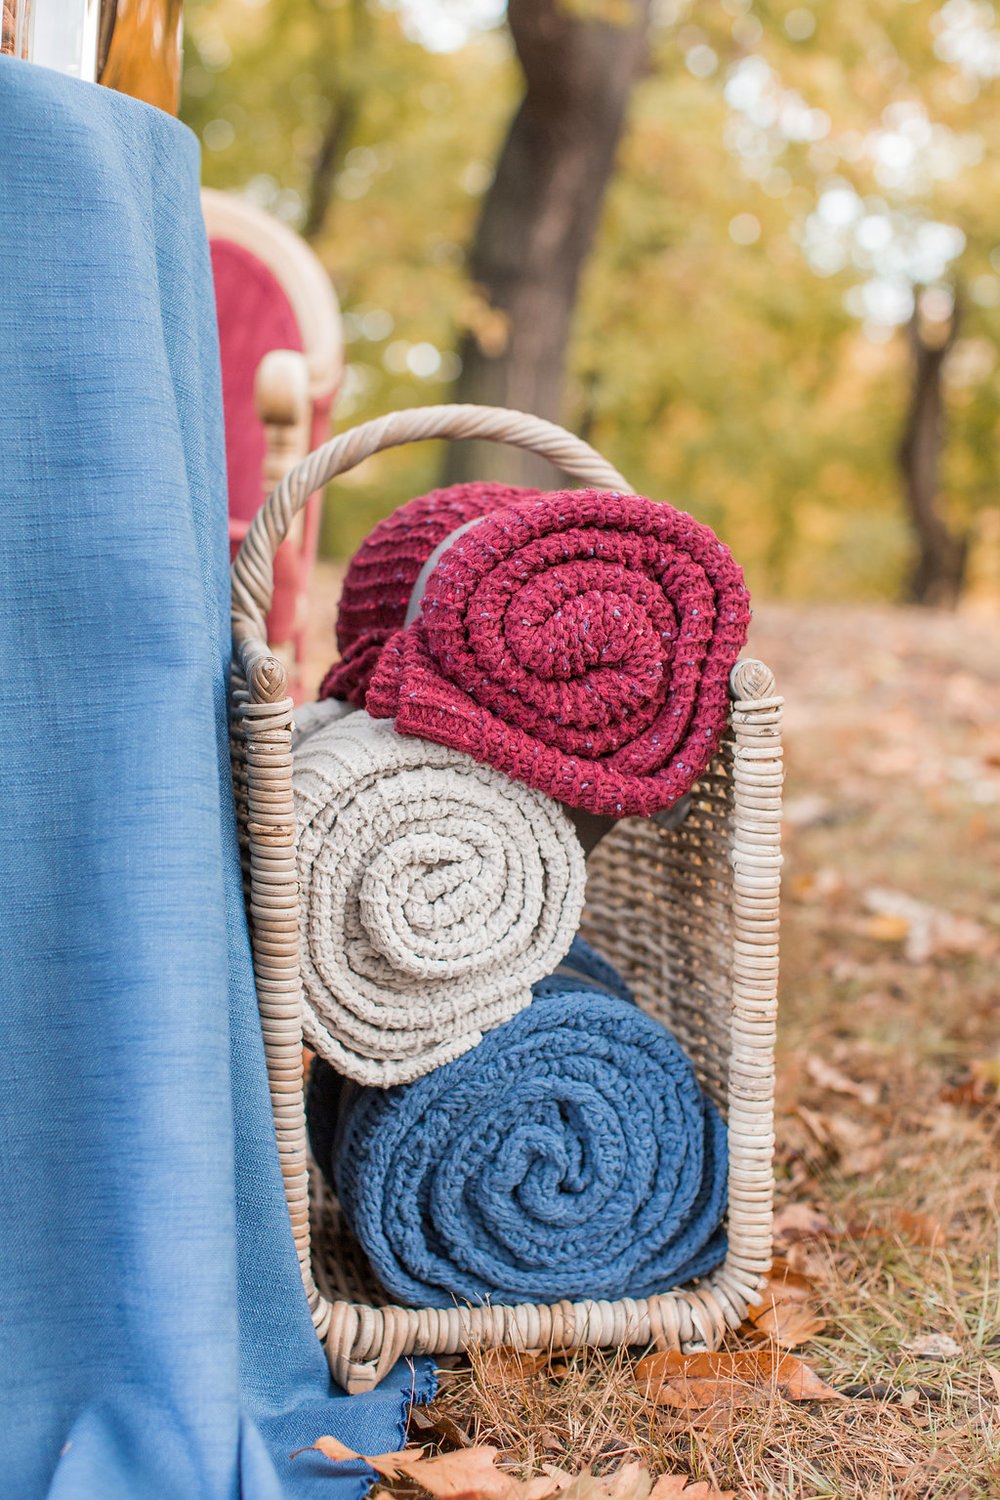 Merlot + Navy Fall Wedding Inspiration at Schenley Park with Blankets - Leight Up Life Photography (206).jpg